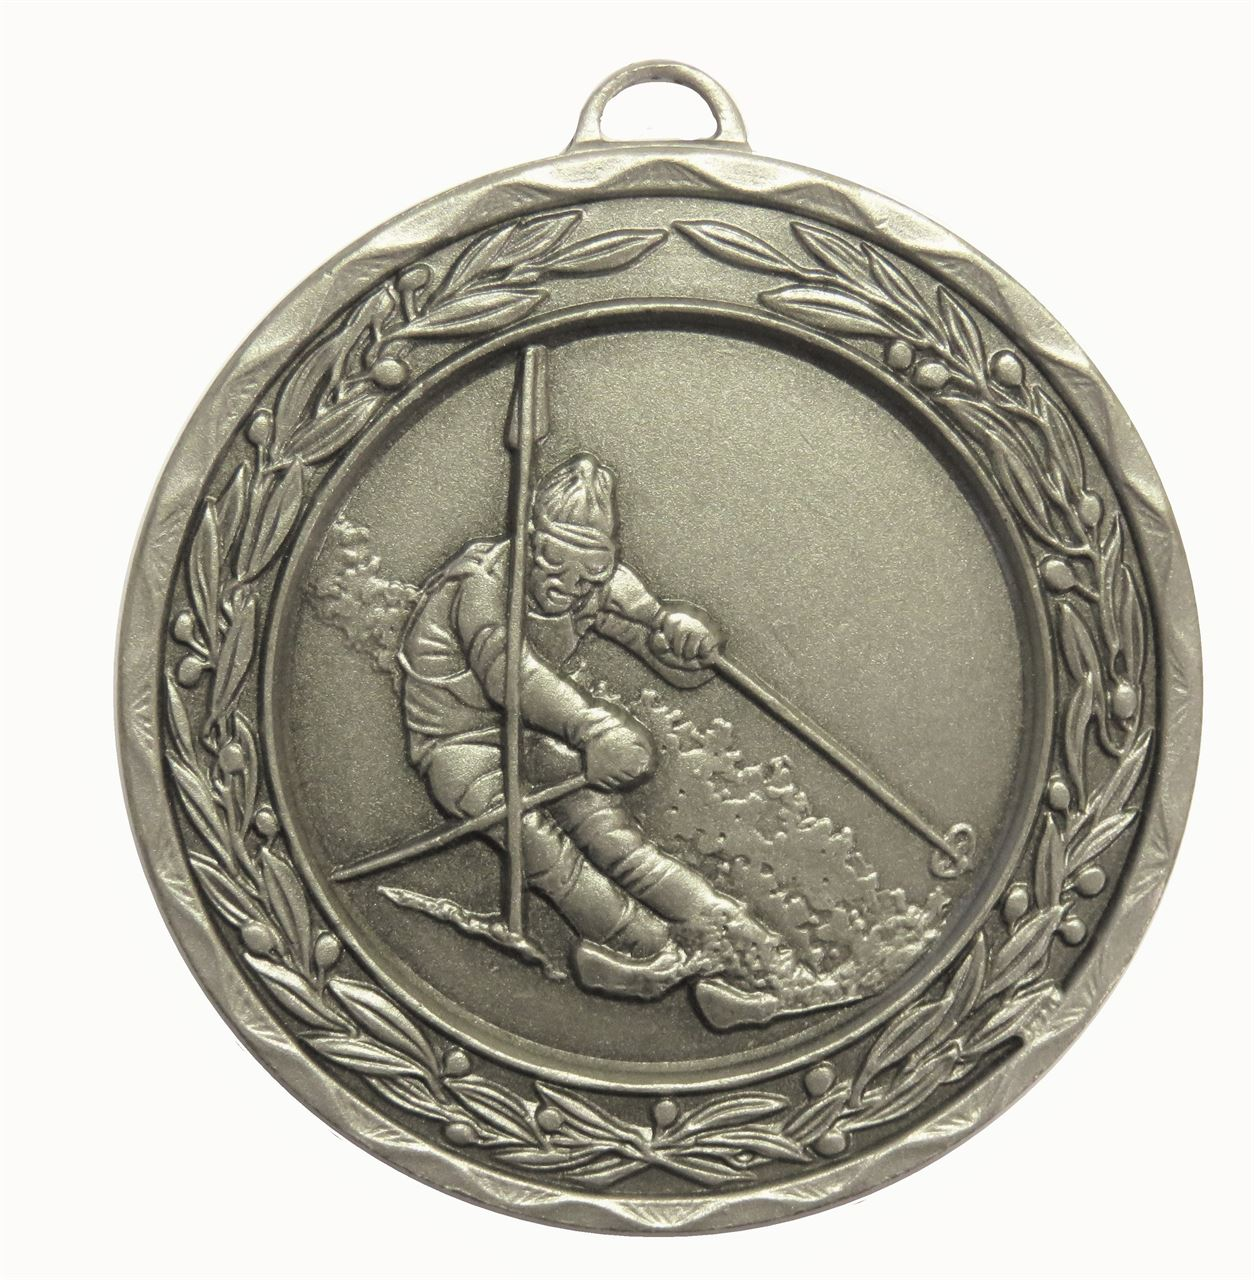 Silver Laurel Economy Skiing Medal (size: 50mm) - 9806E